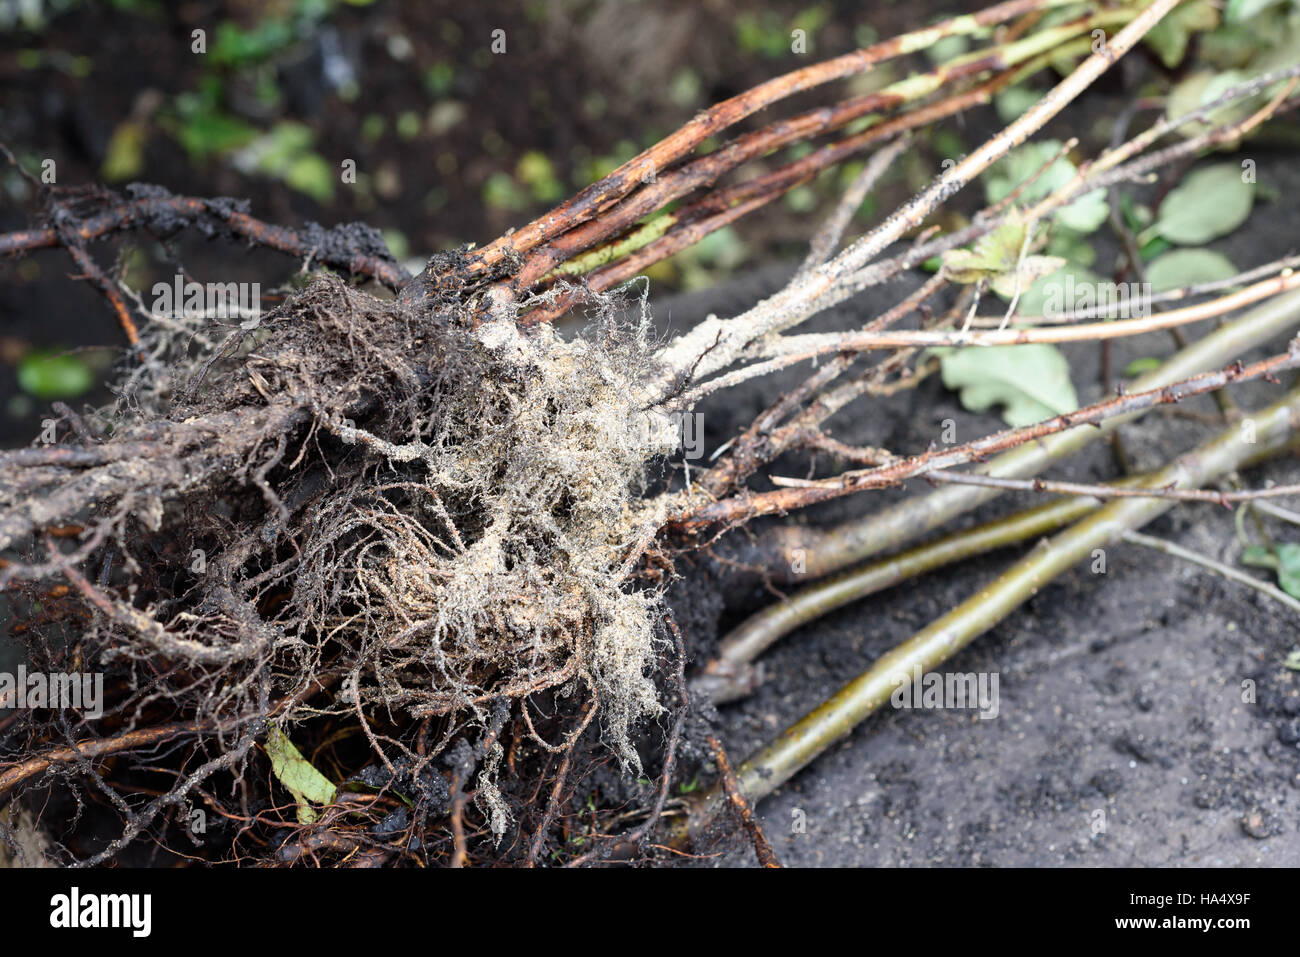 Young roots a a fruit tree sapling covered in fresh earth - Stock Image